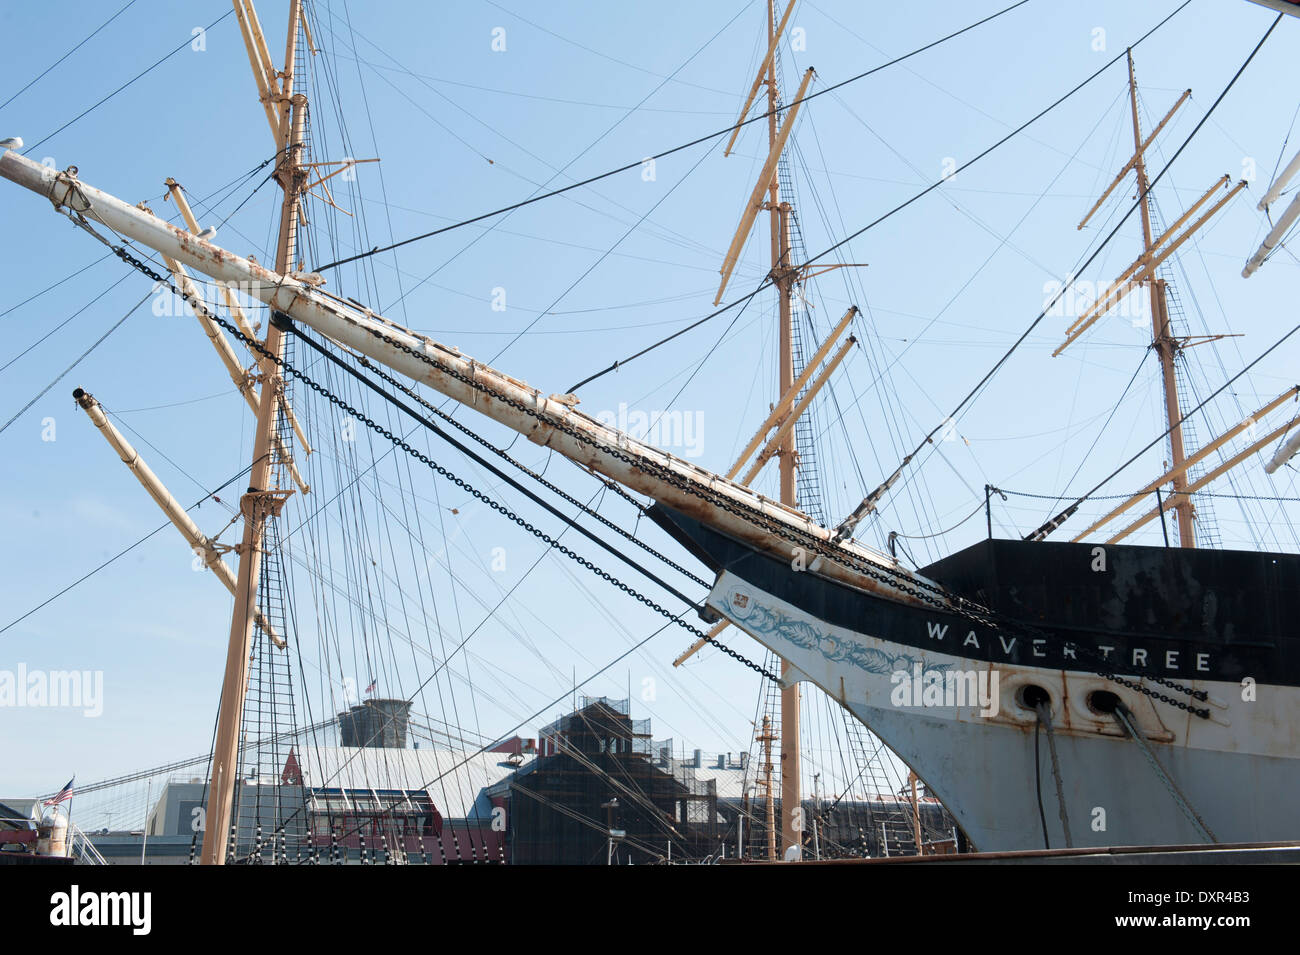 Masts and prows of the Wavertree and Peking, two of the historic ships owned by the South Street Seaport Museum. - Stock Image